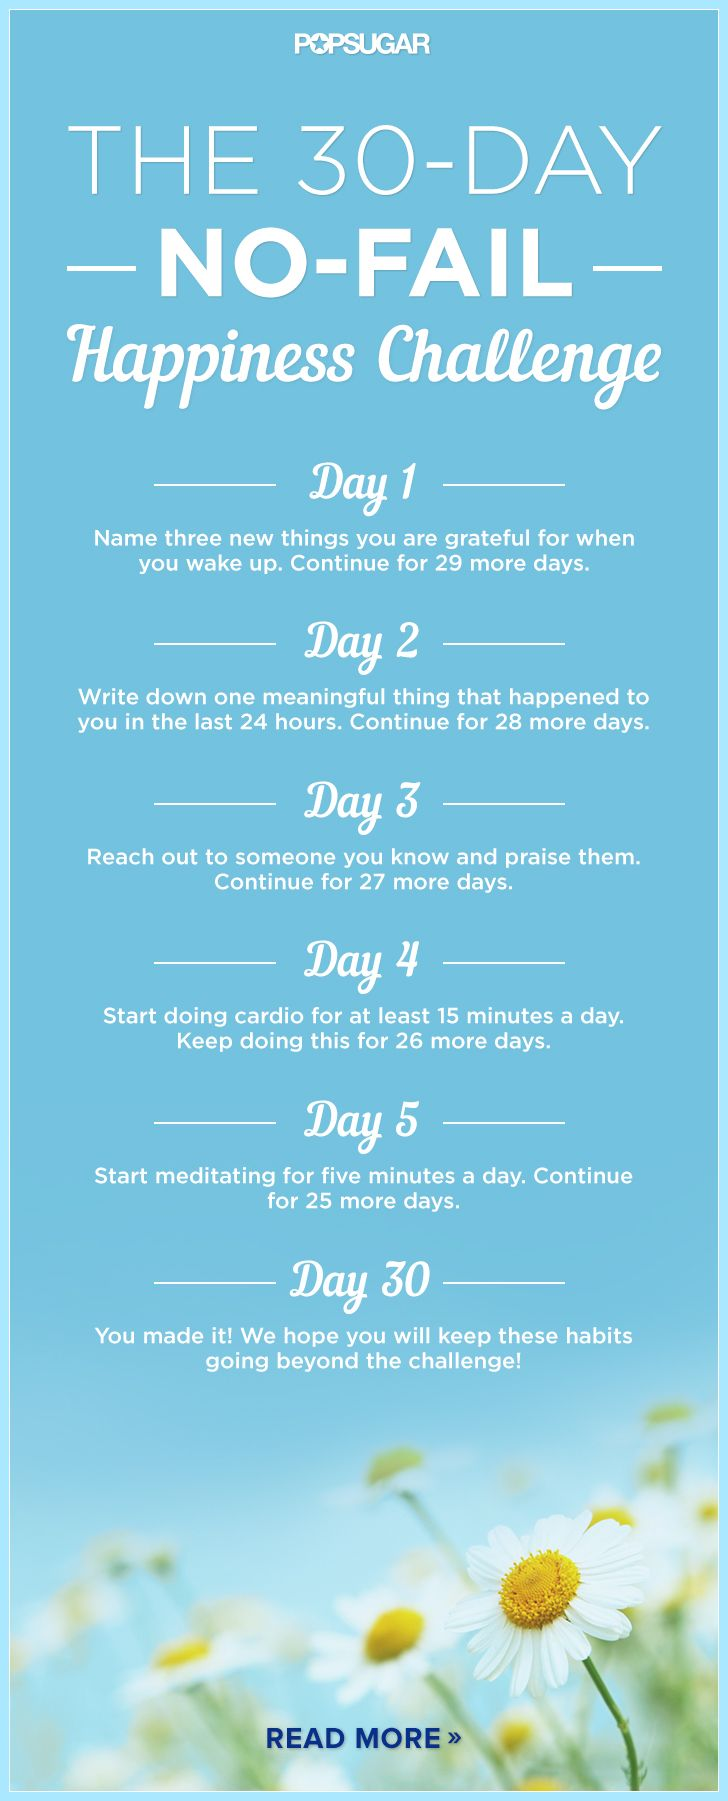 Looking for an extra dose of happiness and positivity? Here's a great 30-Day Challenge to help you!